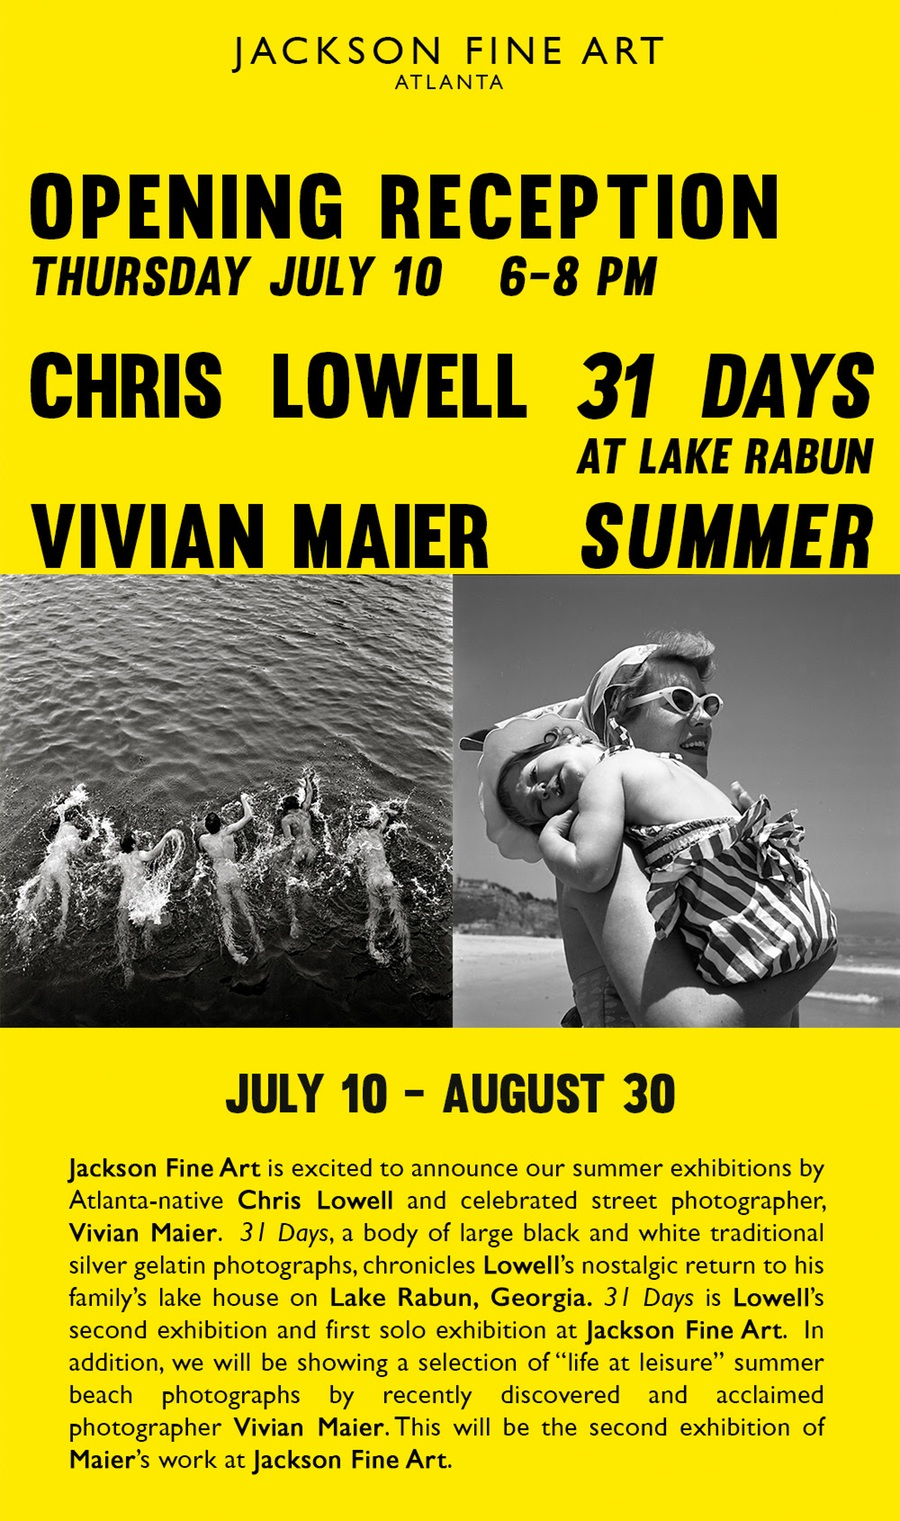 Vivian Maier & Chris Lowell Open at Jackson Fine Art, Thurs., July 10th